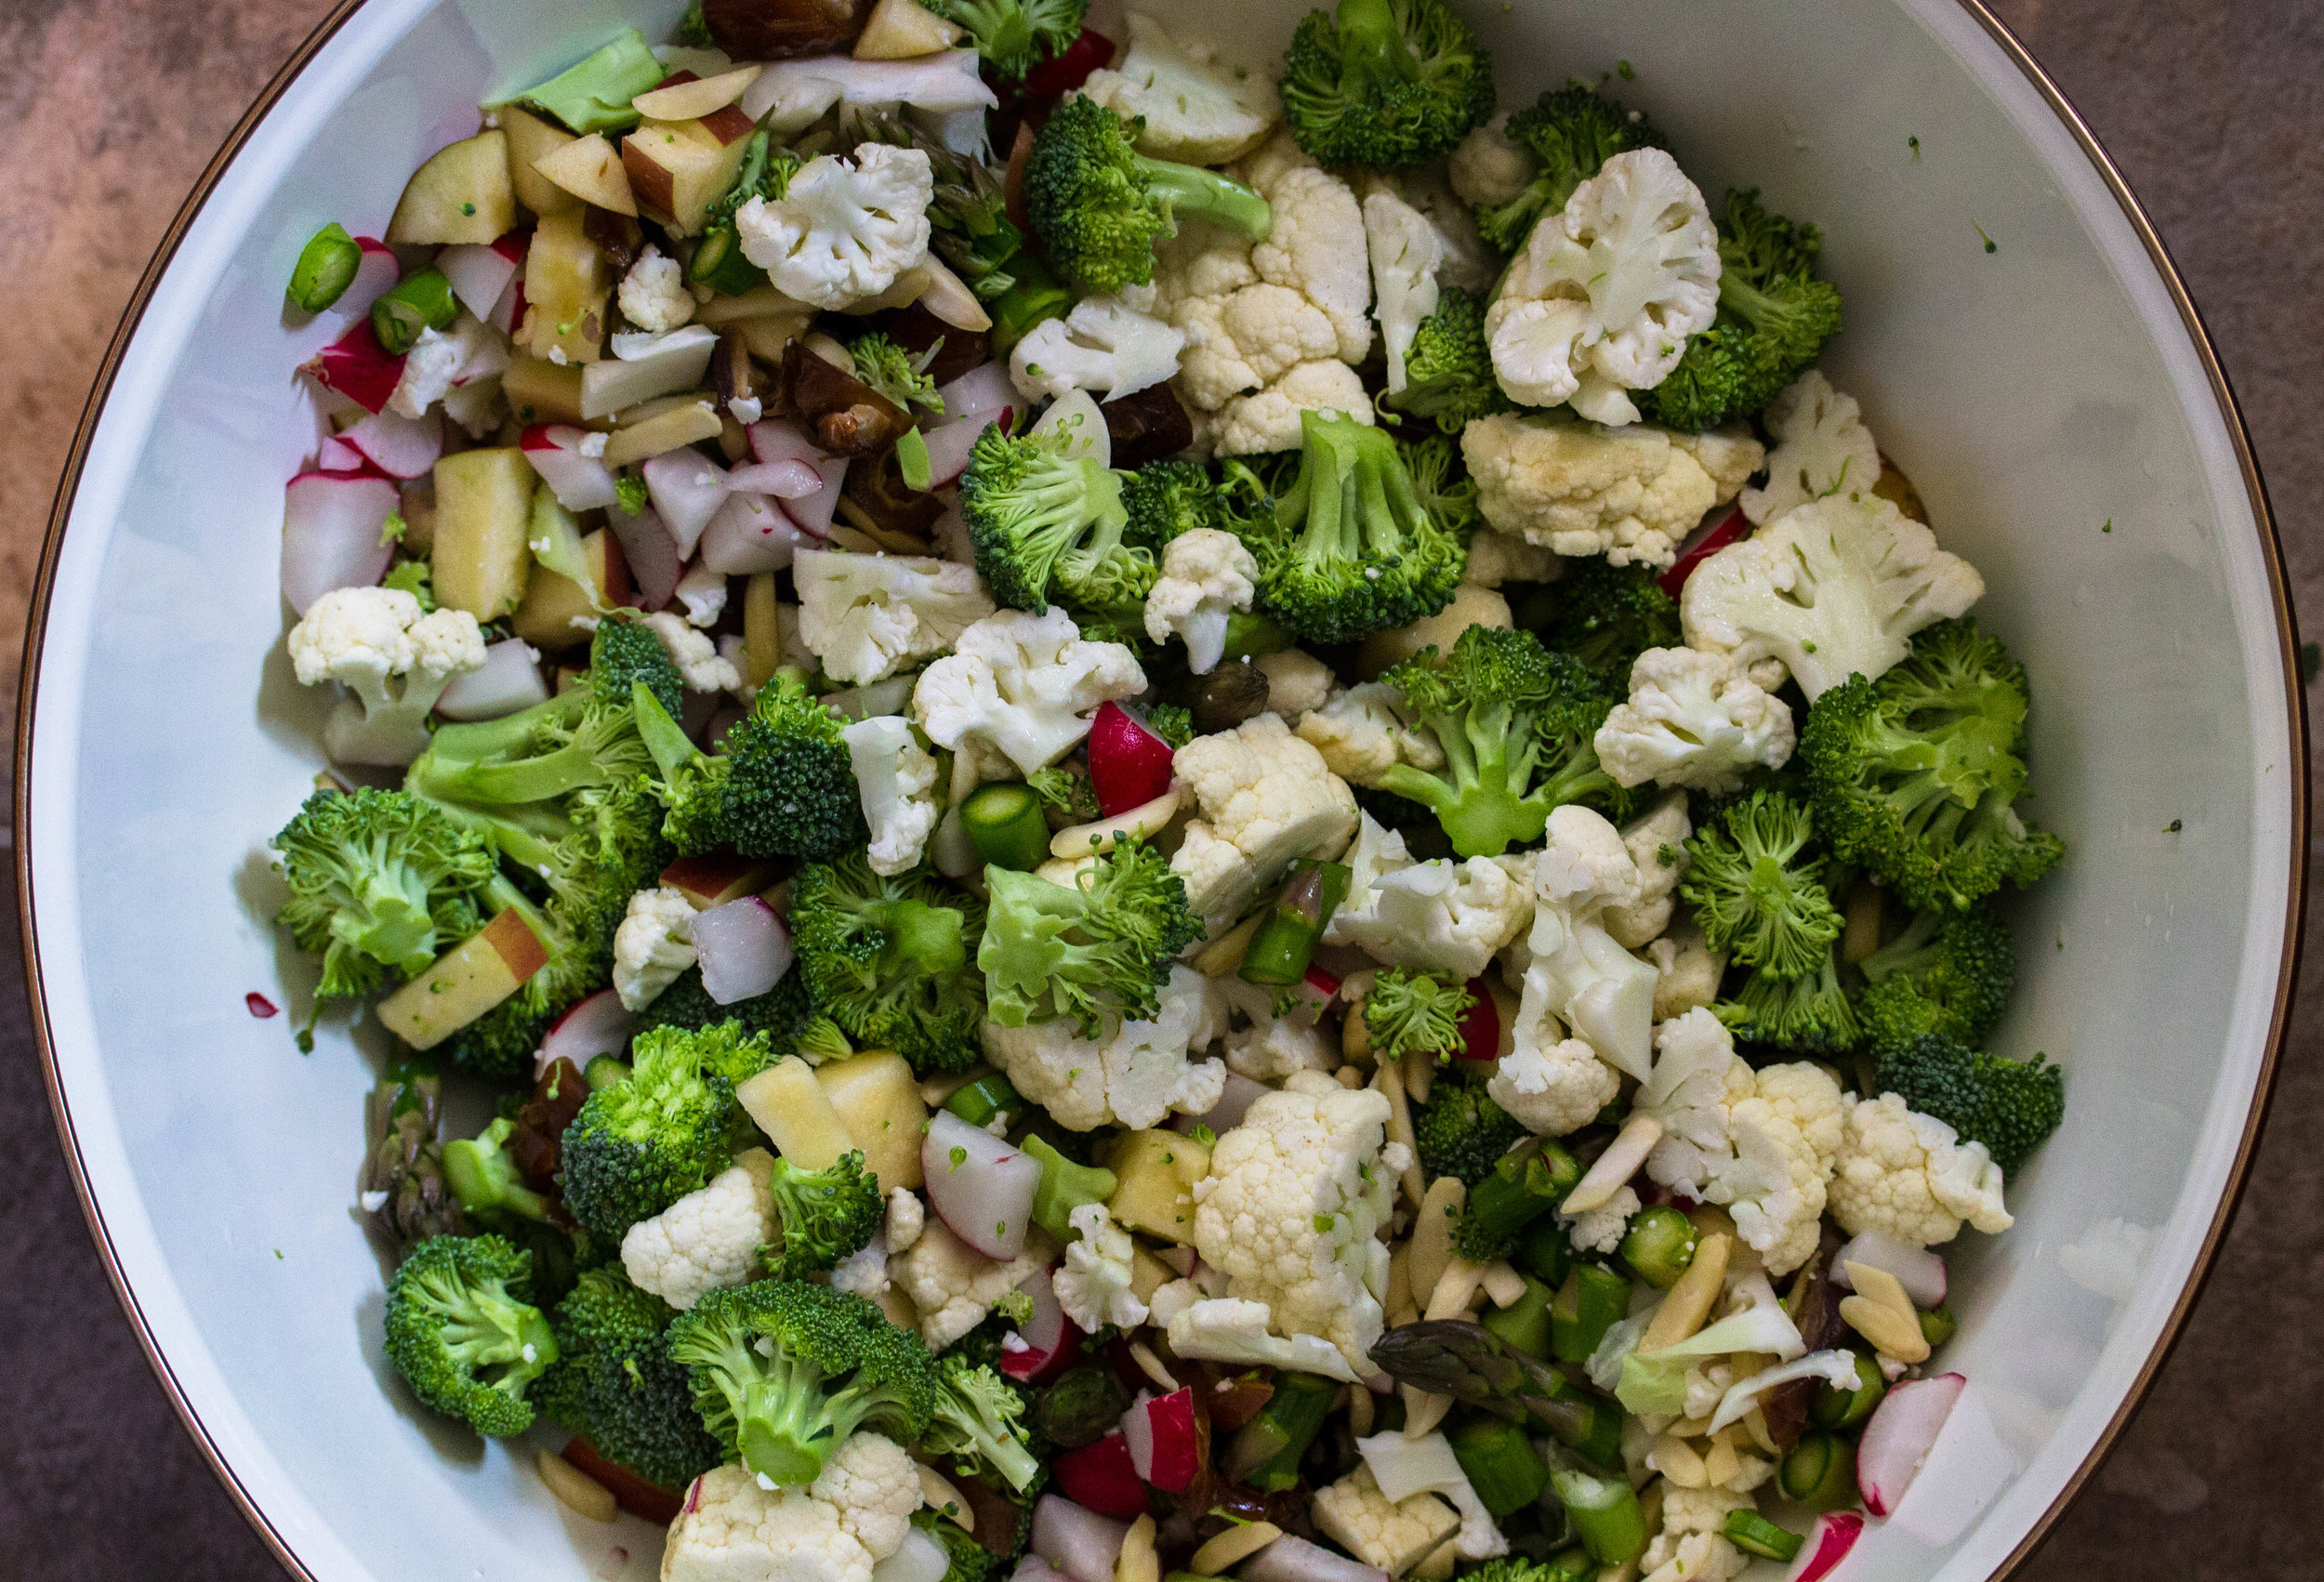 Add chopped ingredients to bowl